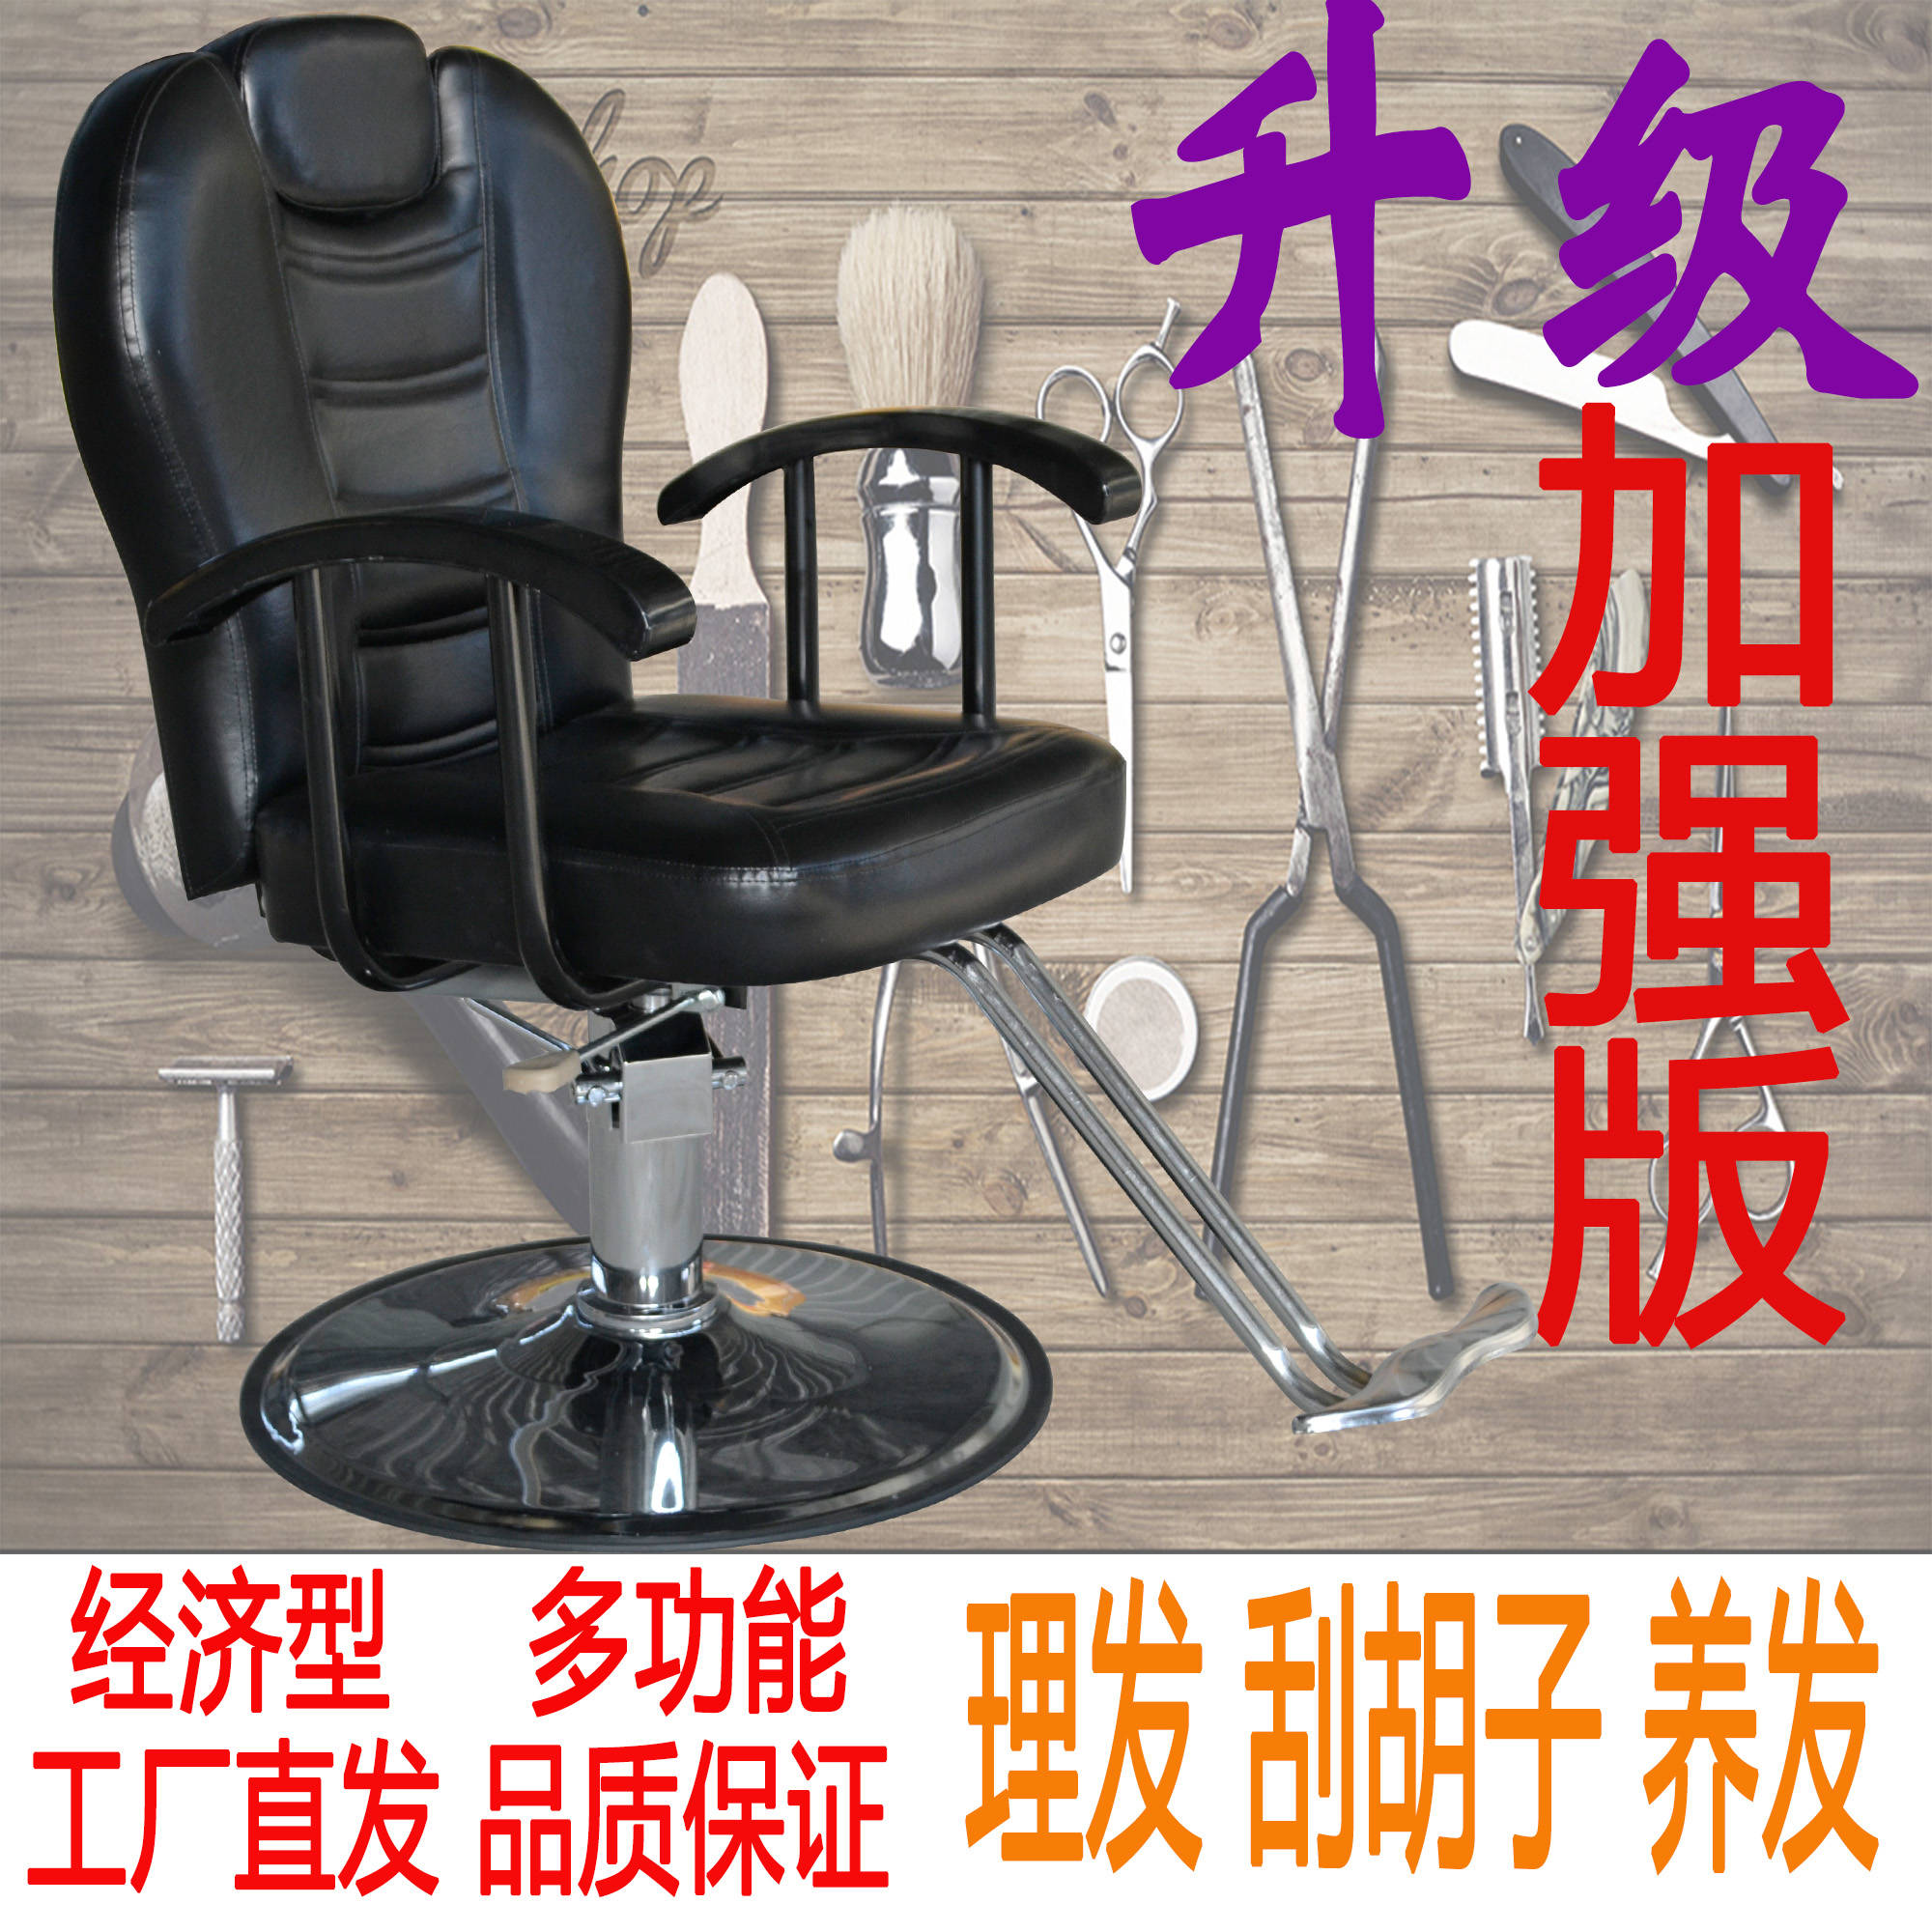 Commercial Furniture Shop For Cheap Simple Wind Hair Chair Hair Cutting Chair Hair Salon Special Hair Chair Can Lift And Cut Hair Chair Beauty Hairdressing Beauty.